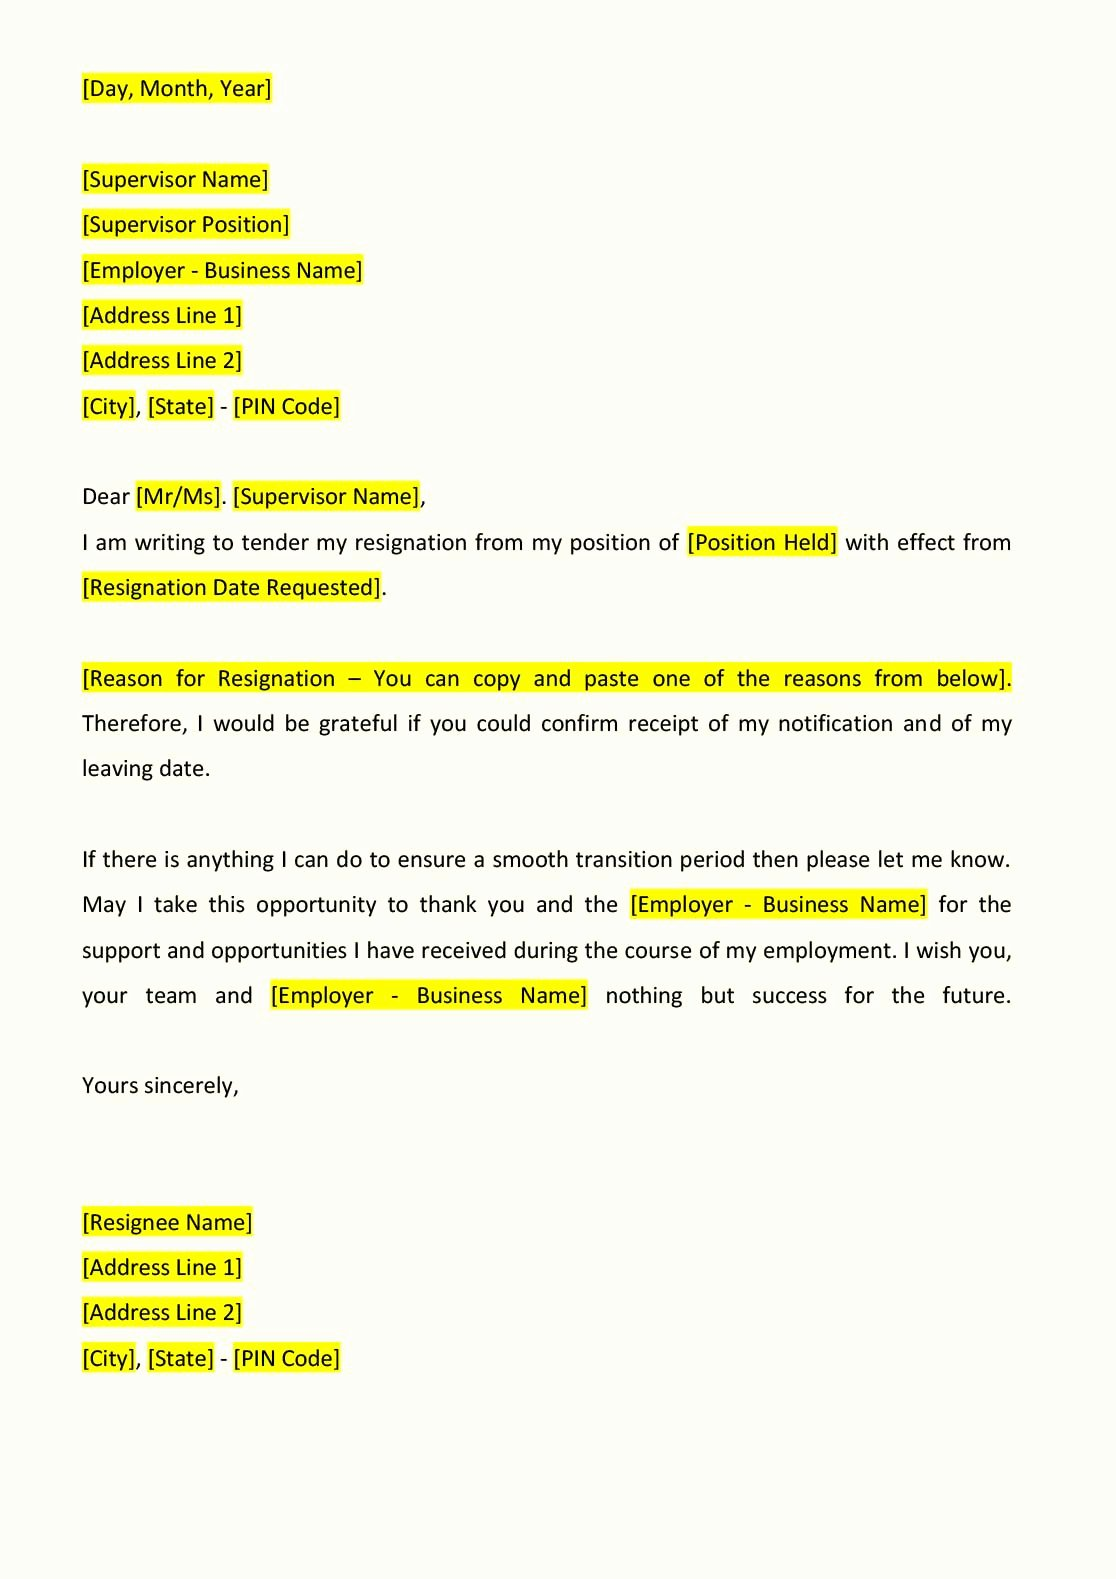 Resignation Letter Samples New Resignation Letter format Indiafilings Document Center